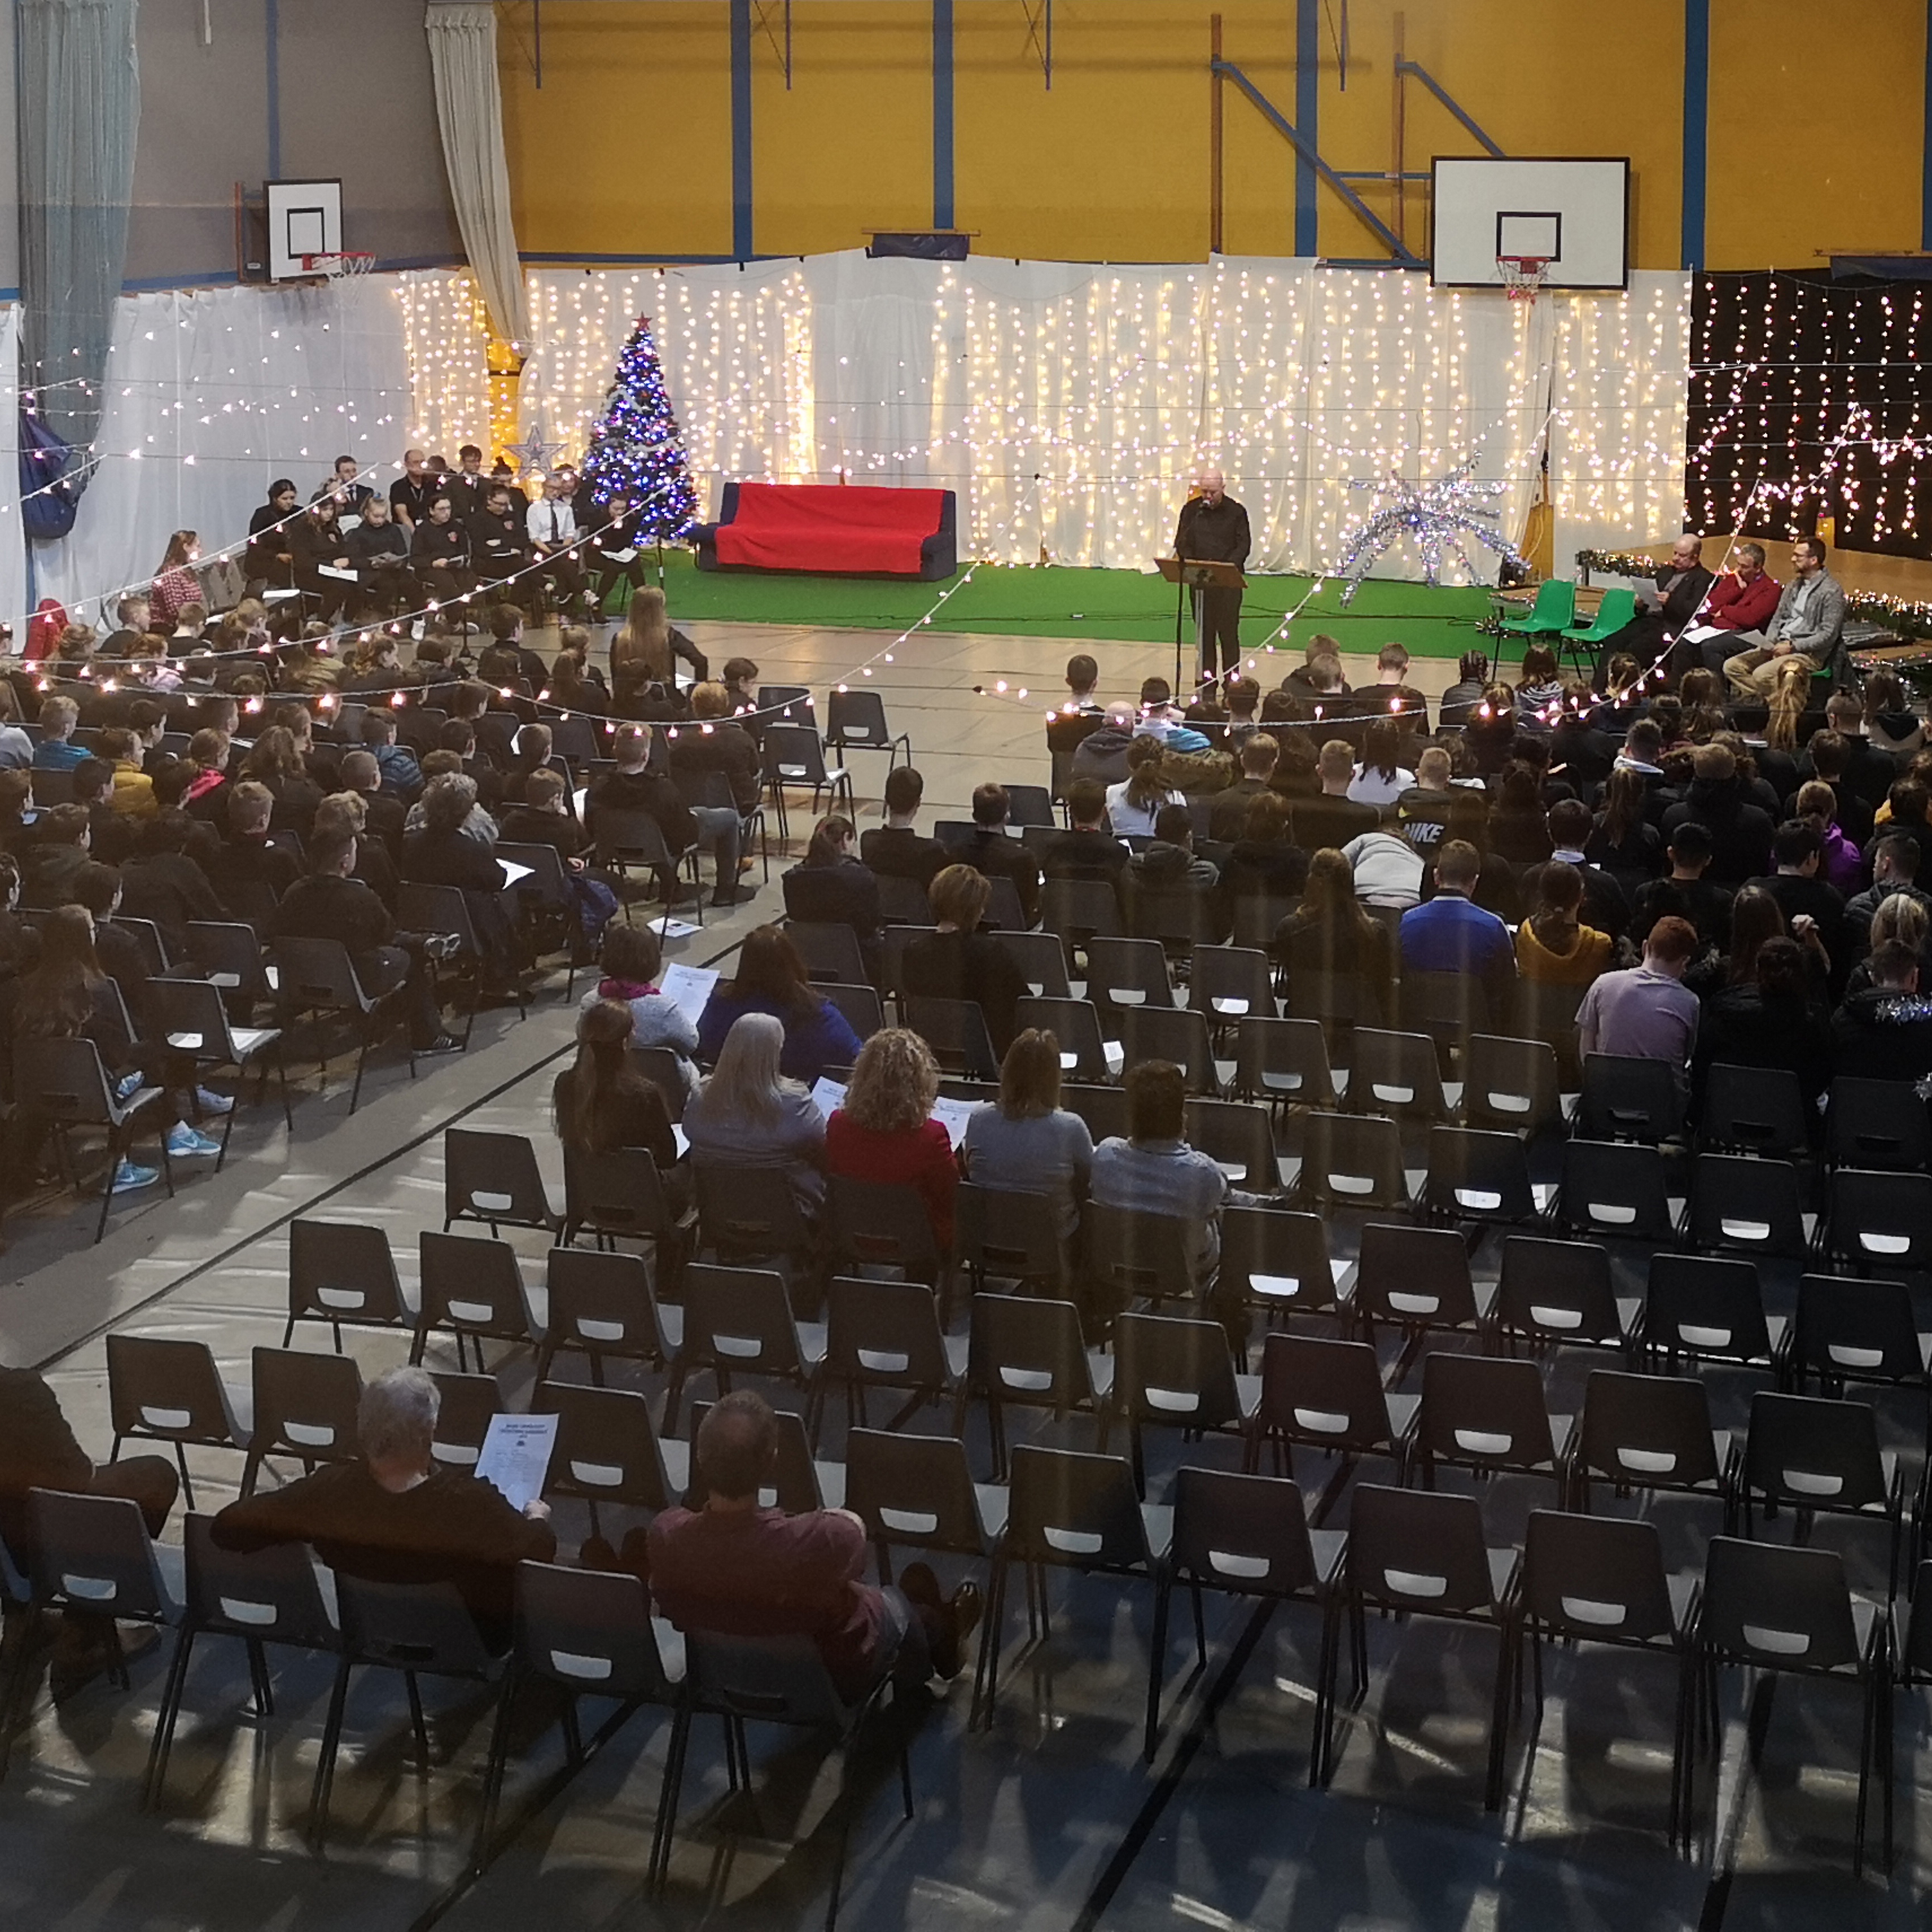 This image is of the school christmas assembly held on Thursday 19th December.